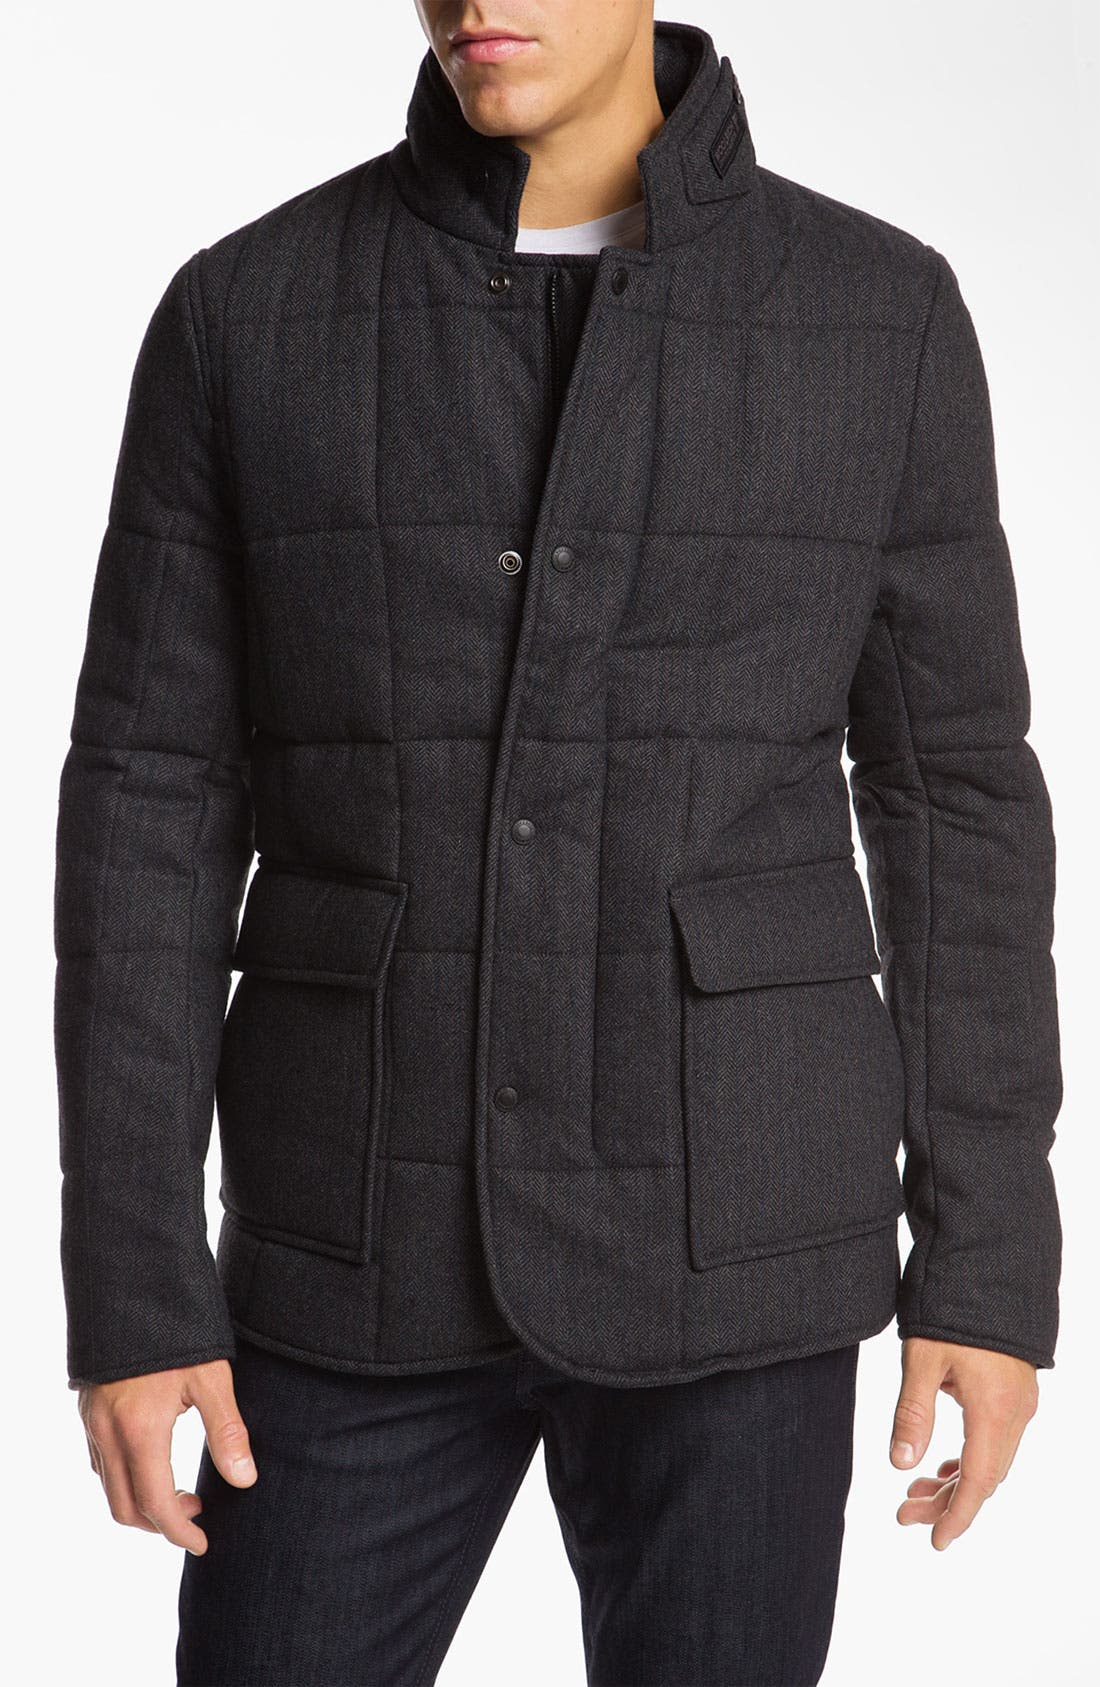 WOOLRICH JOHN RICH,                             Woolrich 'Blizzard' Quilted Jacket,                             Main thumbnail 1, color,                             020